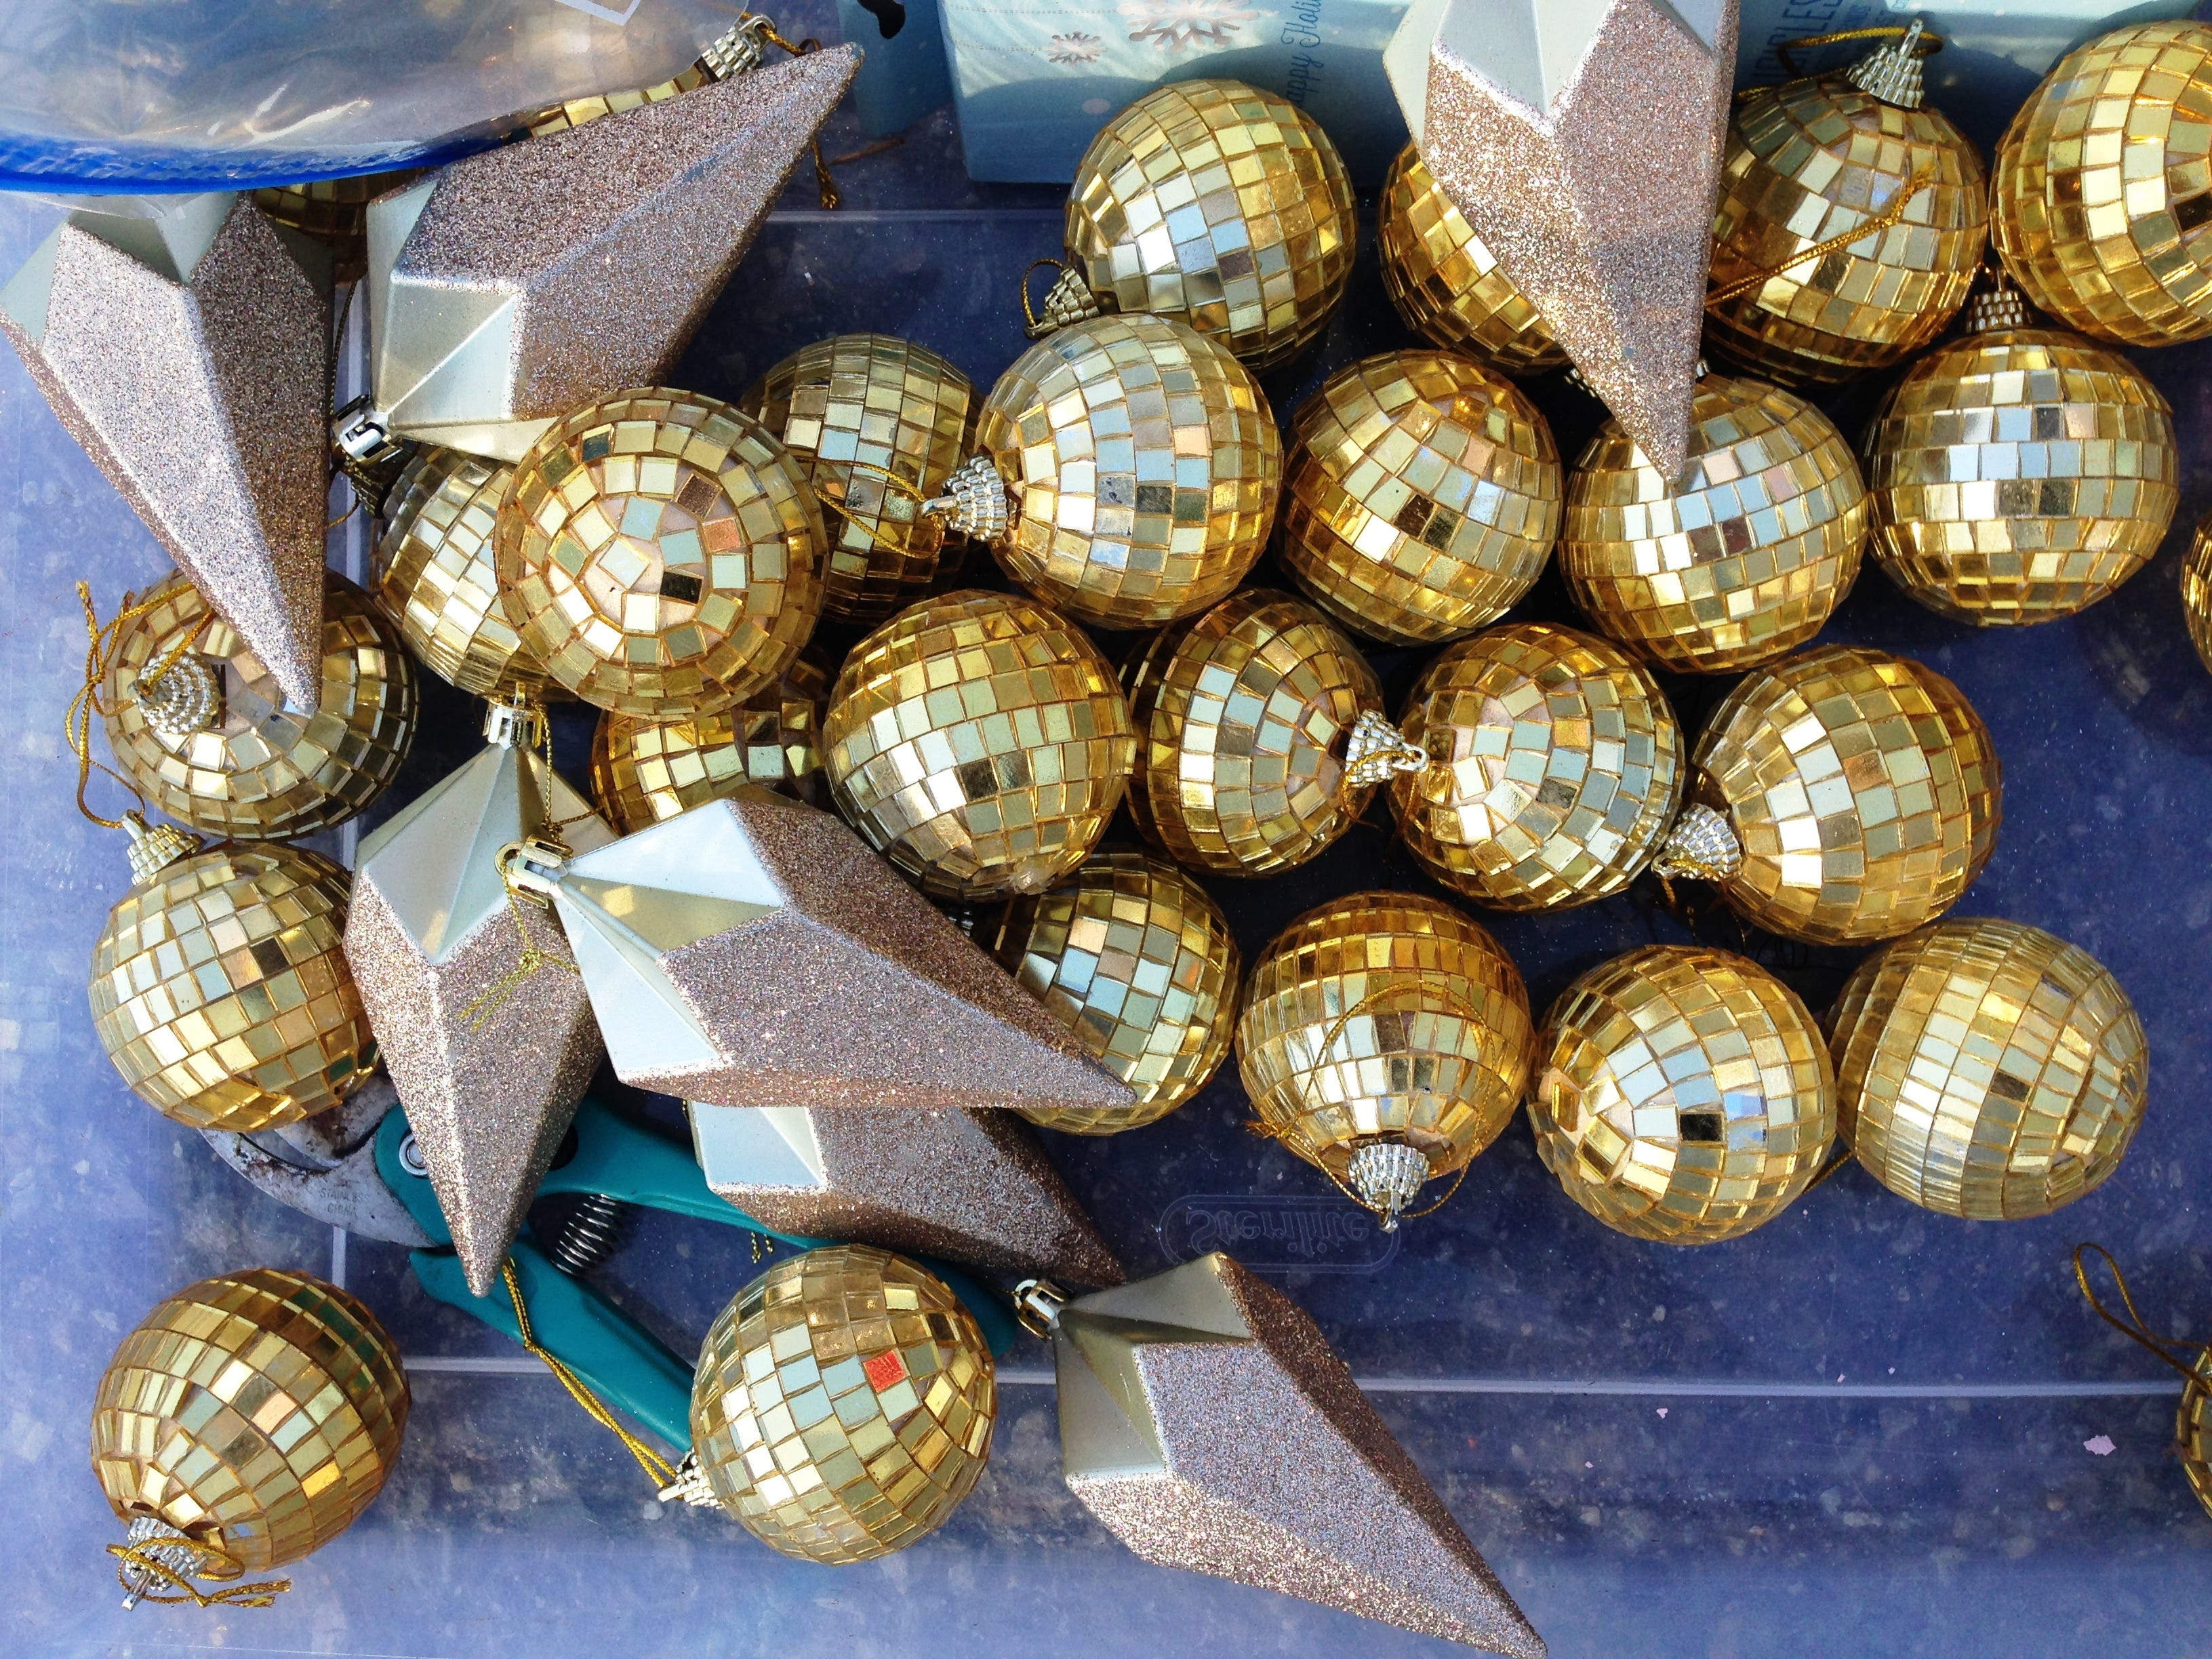 Gold disco balls are ready to hang on a Christmas tree sponsored by Fleur De Rye in Ventura. More than 100 elaborately decorated trees will be on display for Holidays at the Plaza, an event at Plaza Park in Ventura running Dec. 7 through Jan. 2